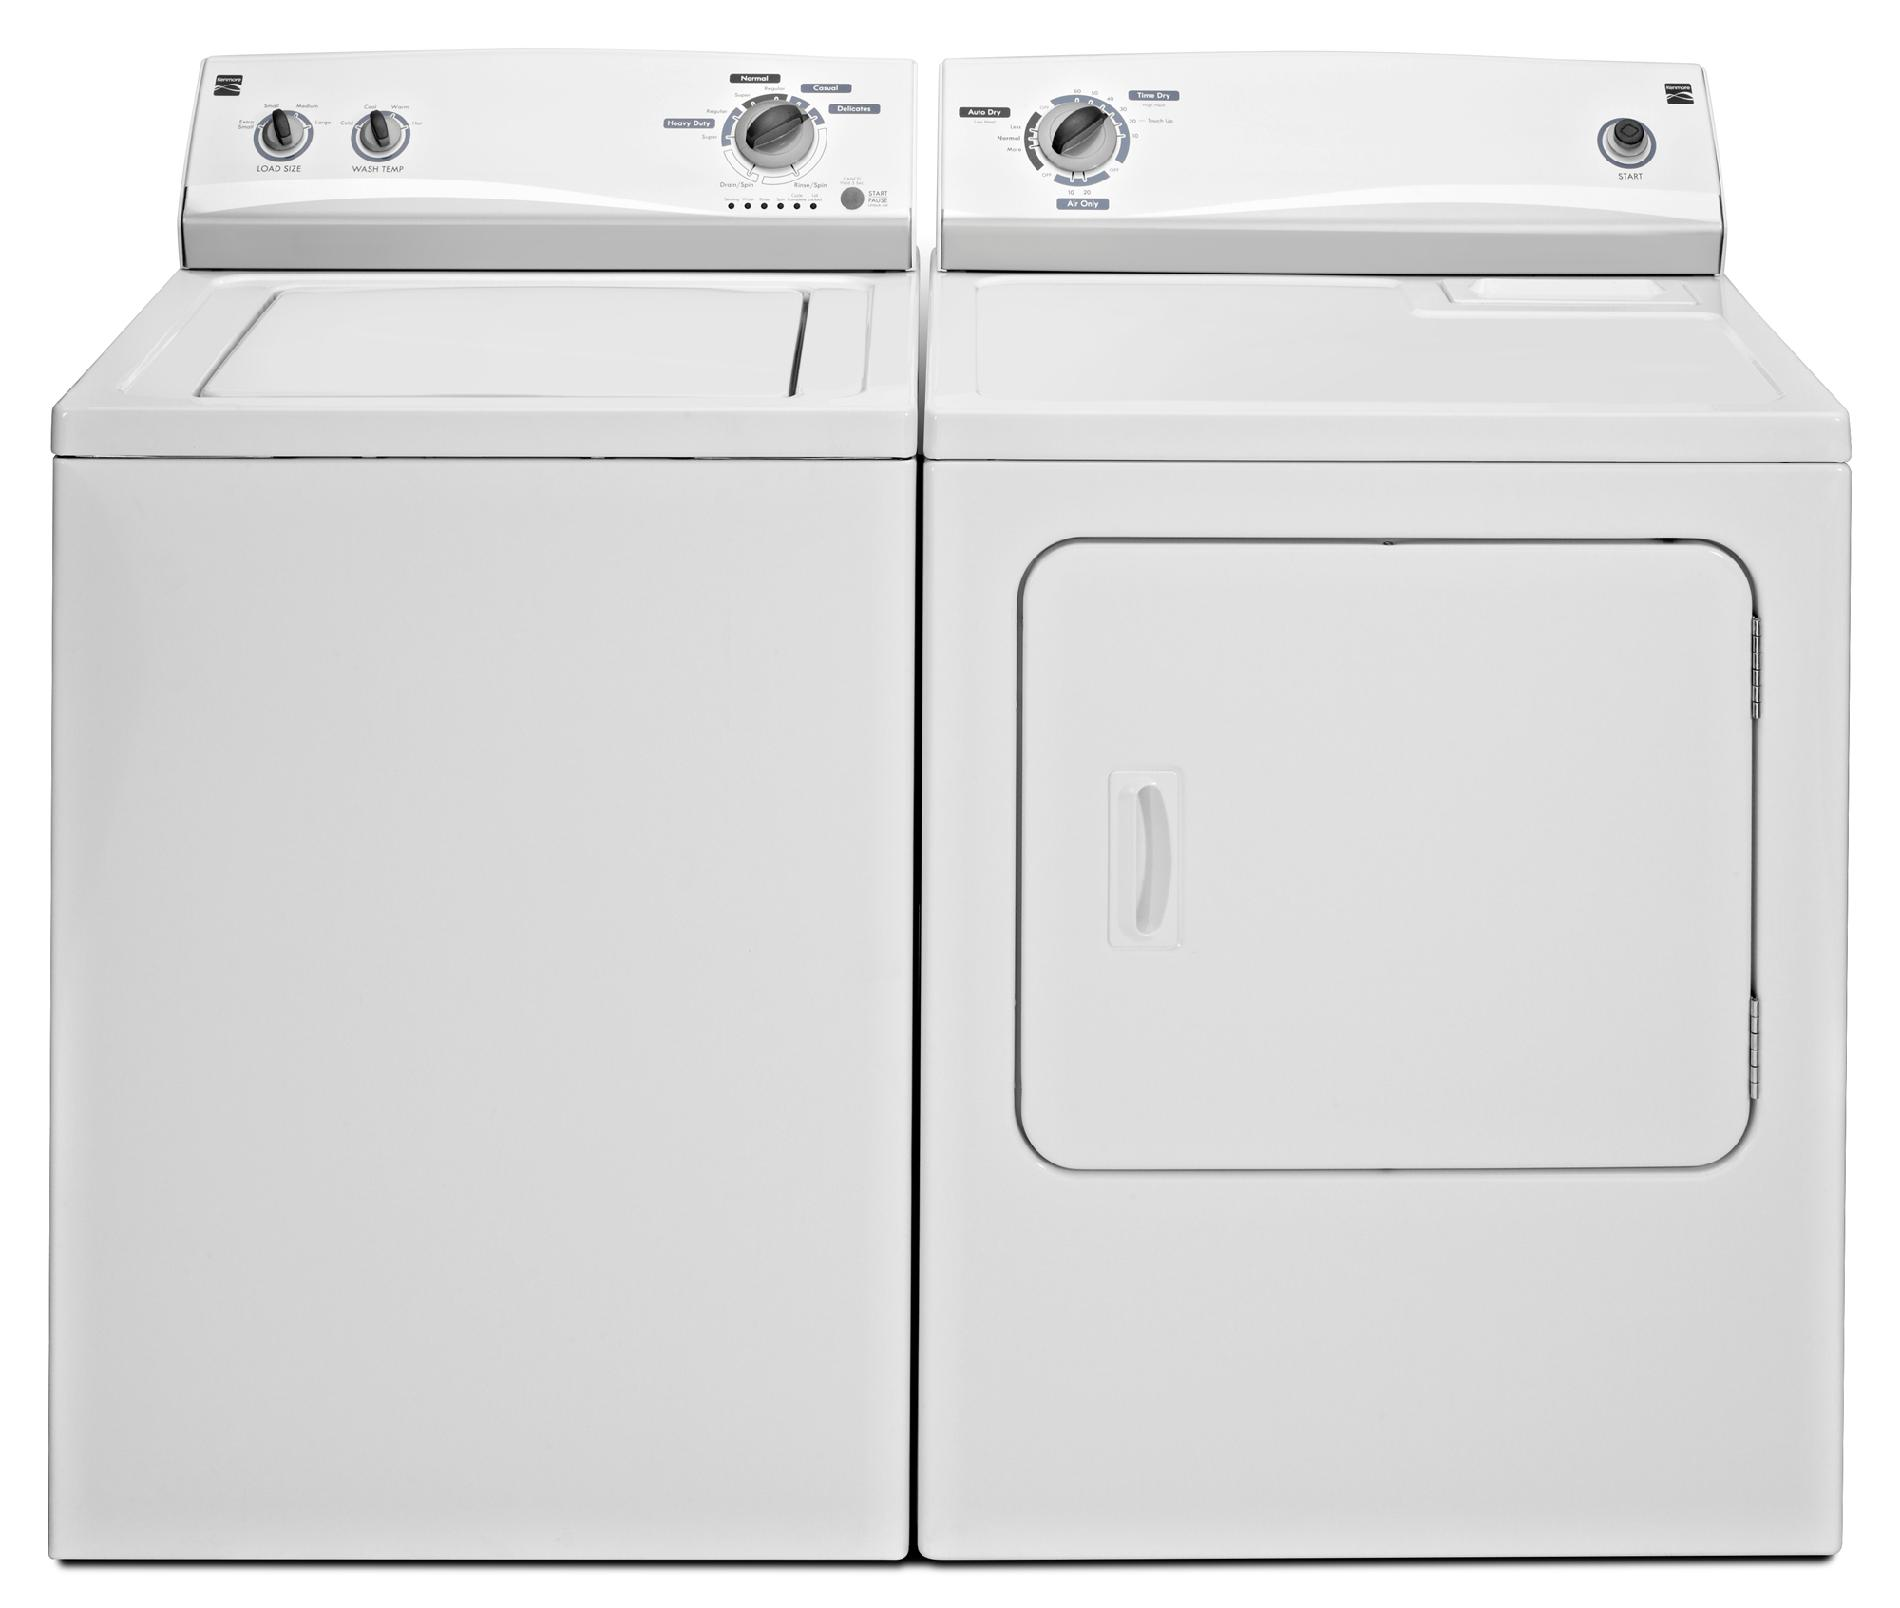 Kenmore 6.5 cu. ft. Electric Dryer - White